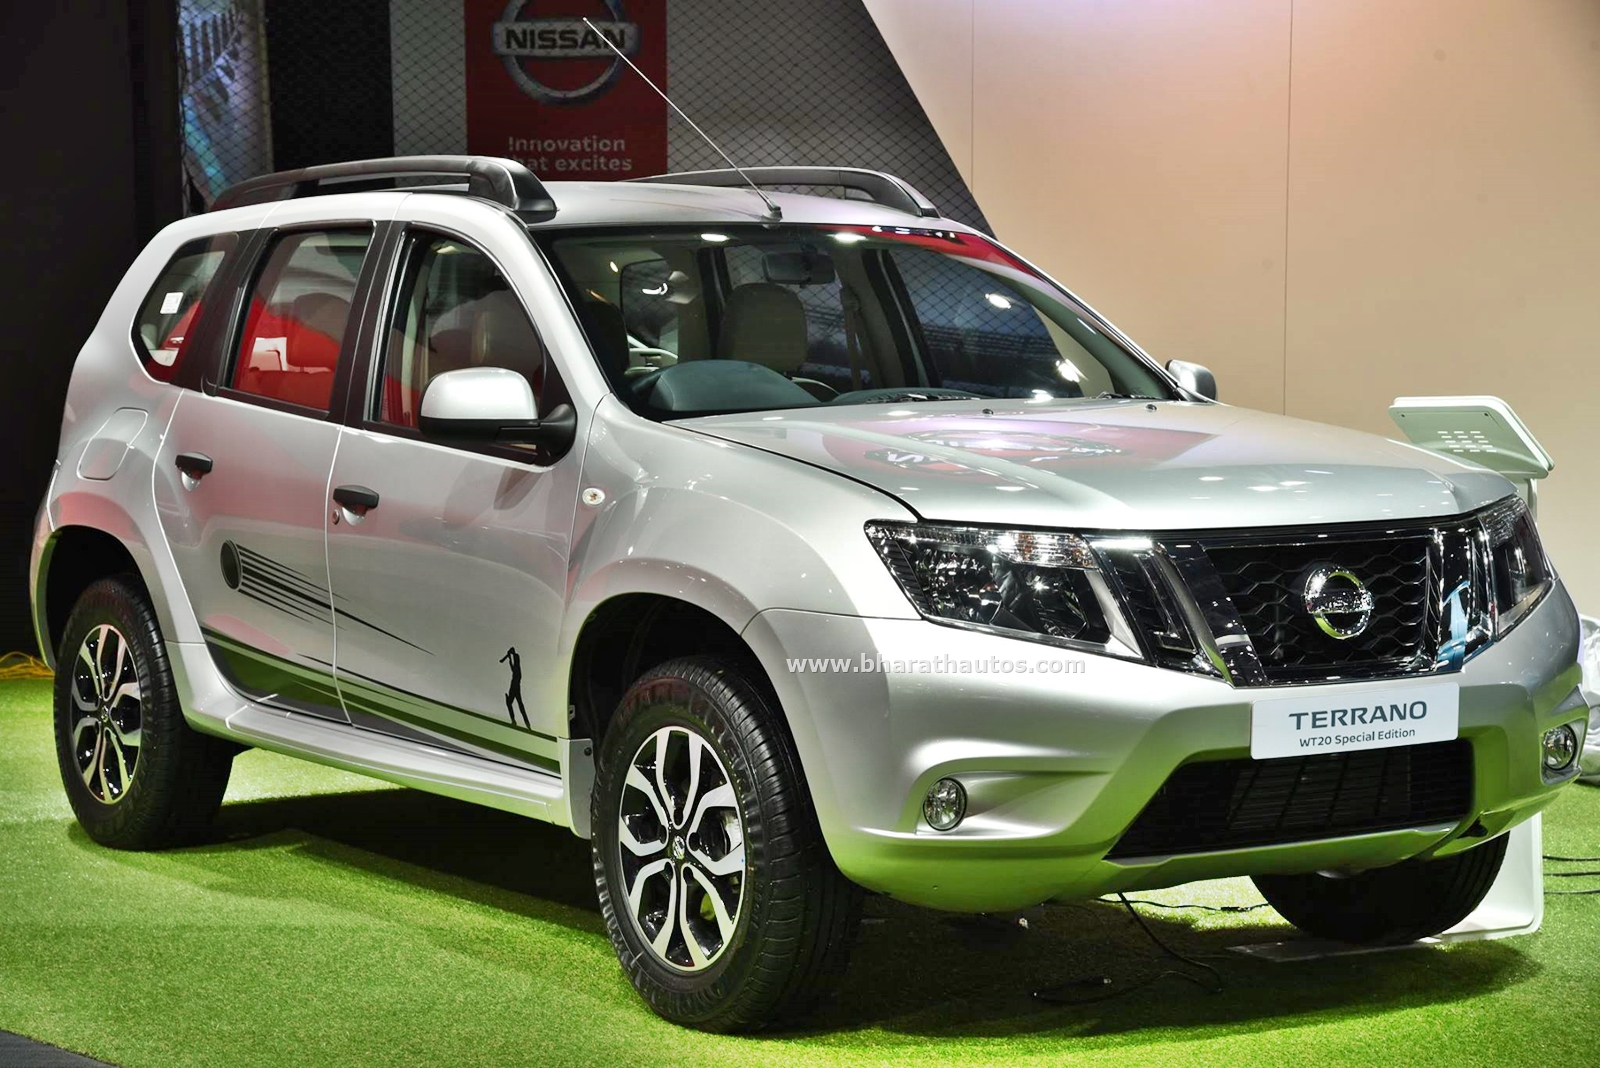 All Around Auto >> Nissan Terrano Special, Terrano T20 & Micra T20 editions - 2016 Auto Expo